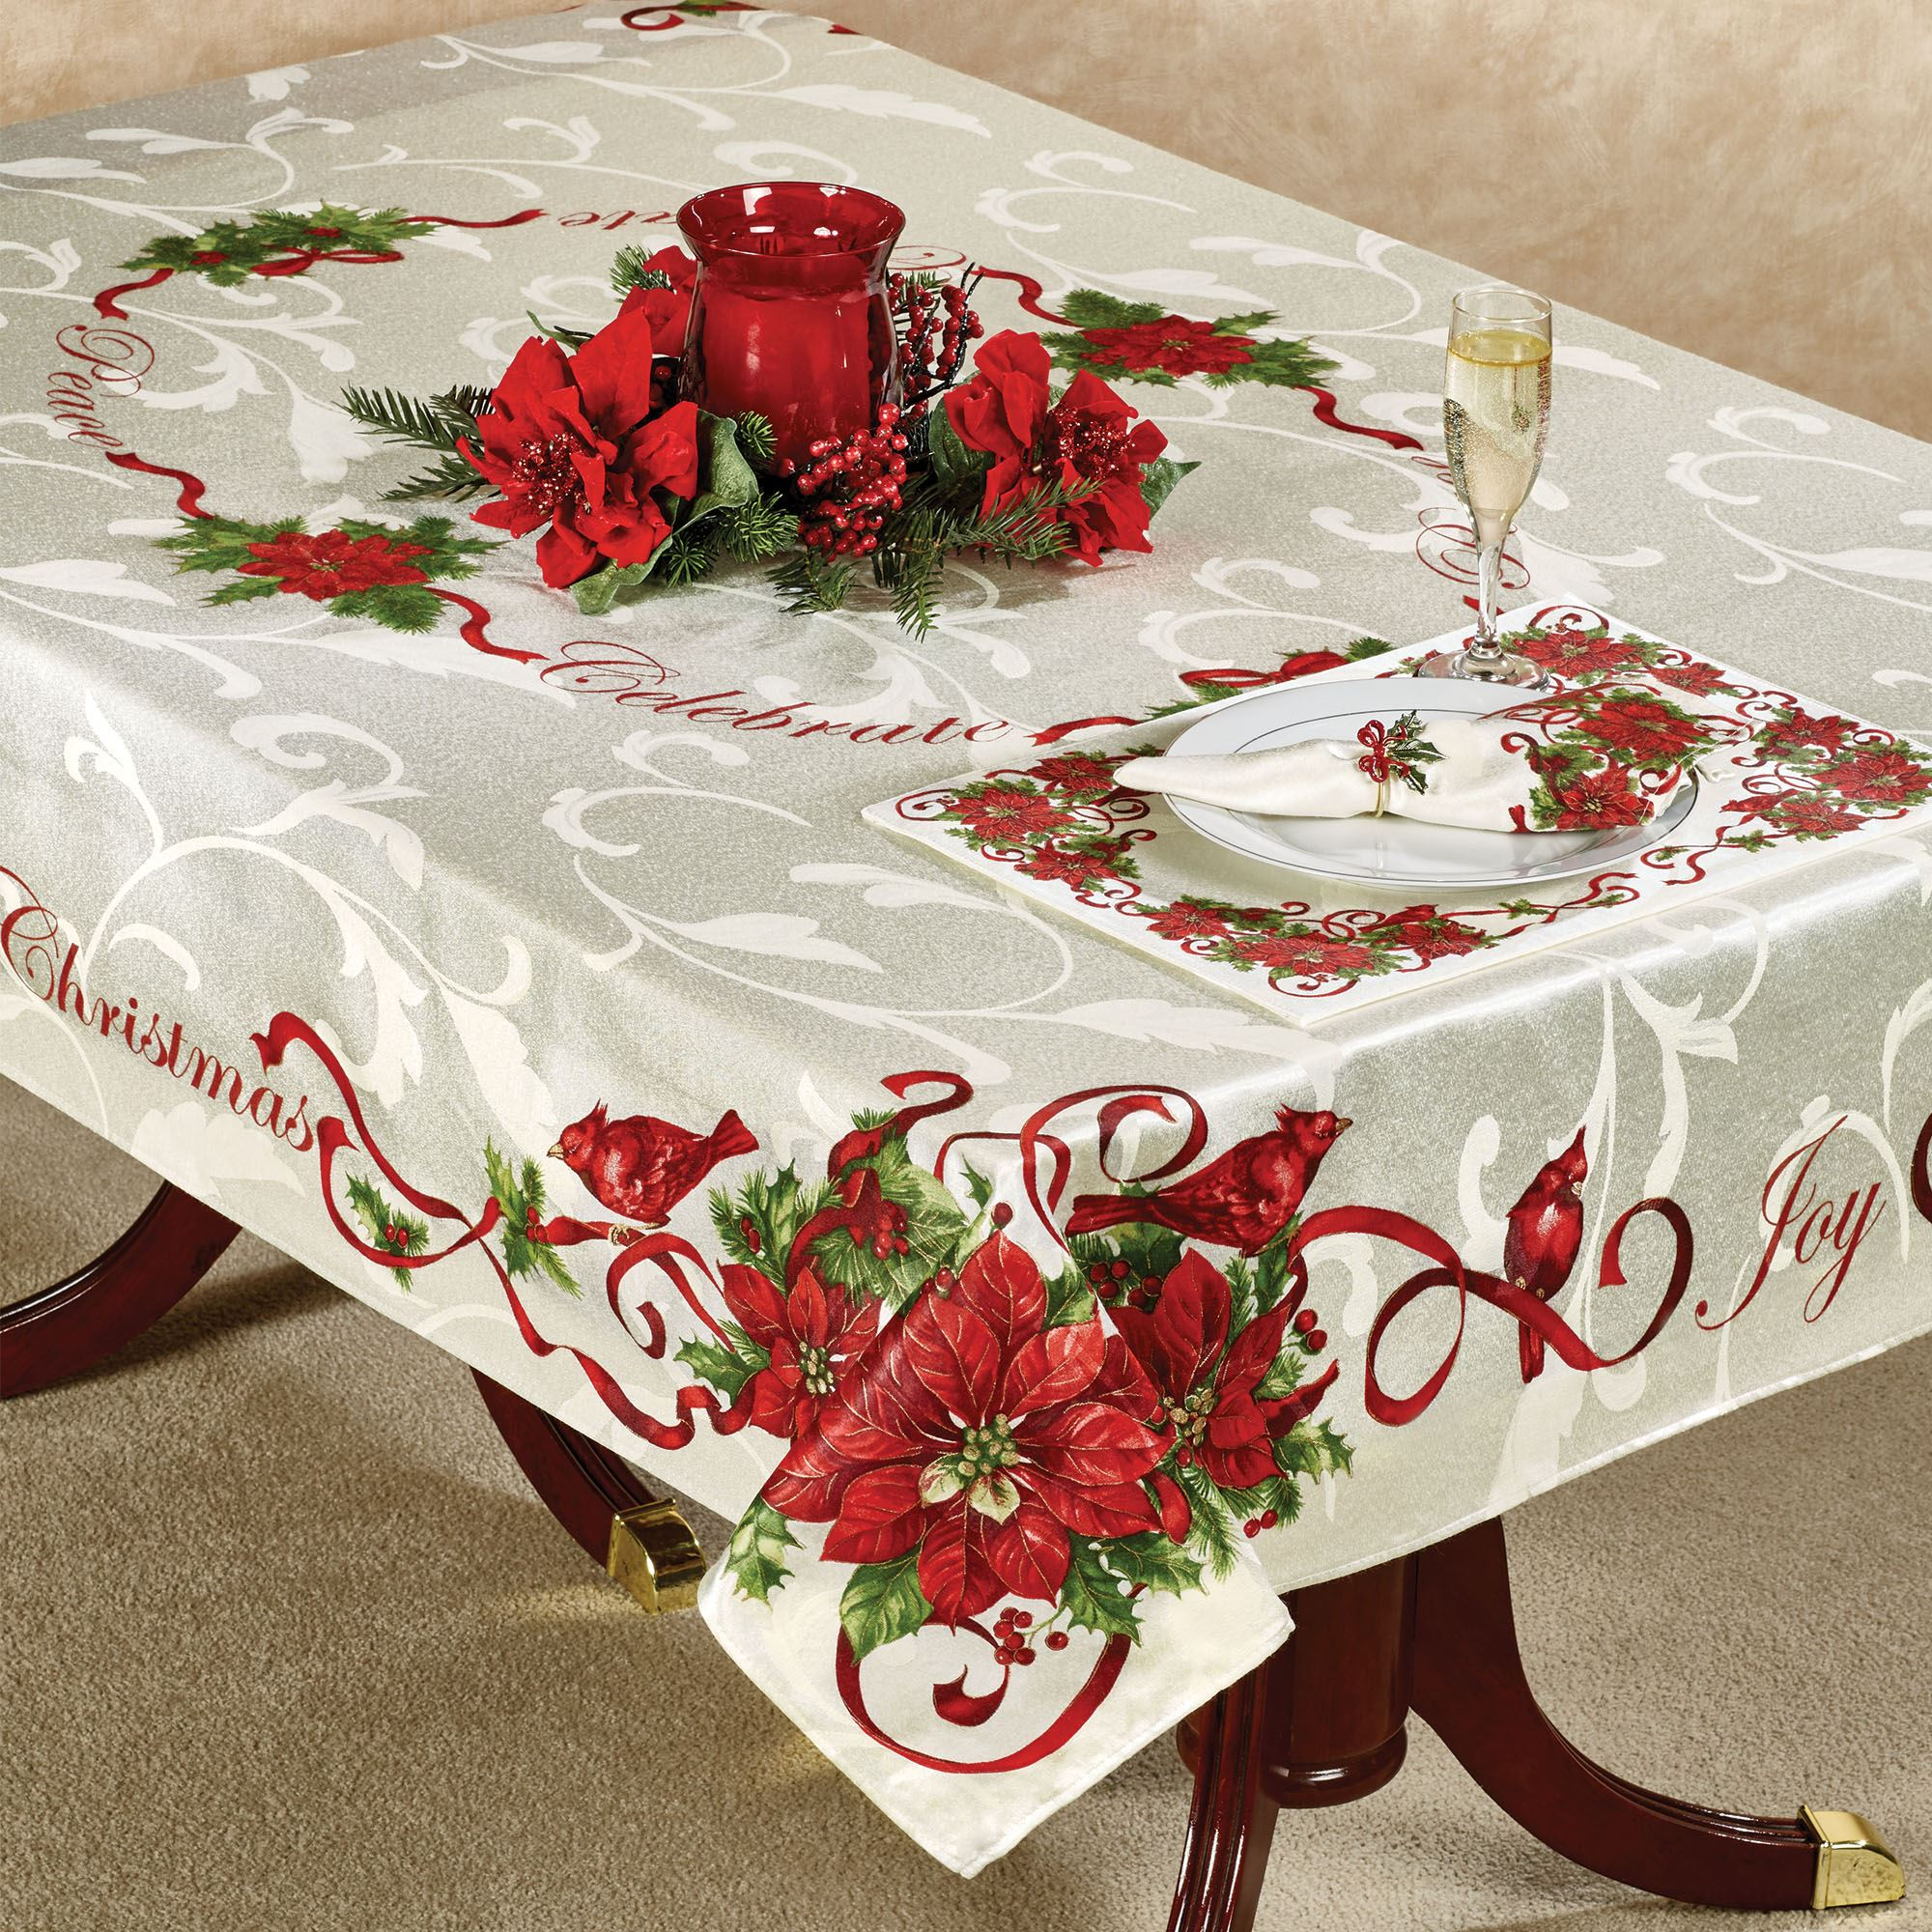 Christmas Tablecloths.Christmas Cardinals Holiday Tablecloth